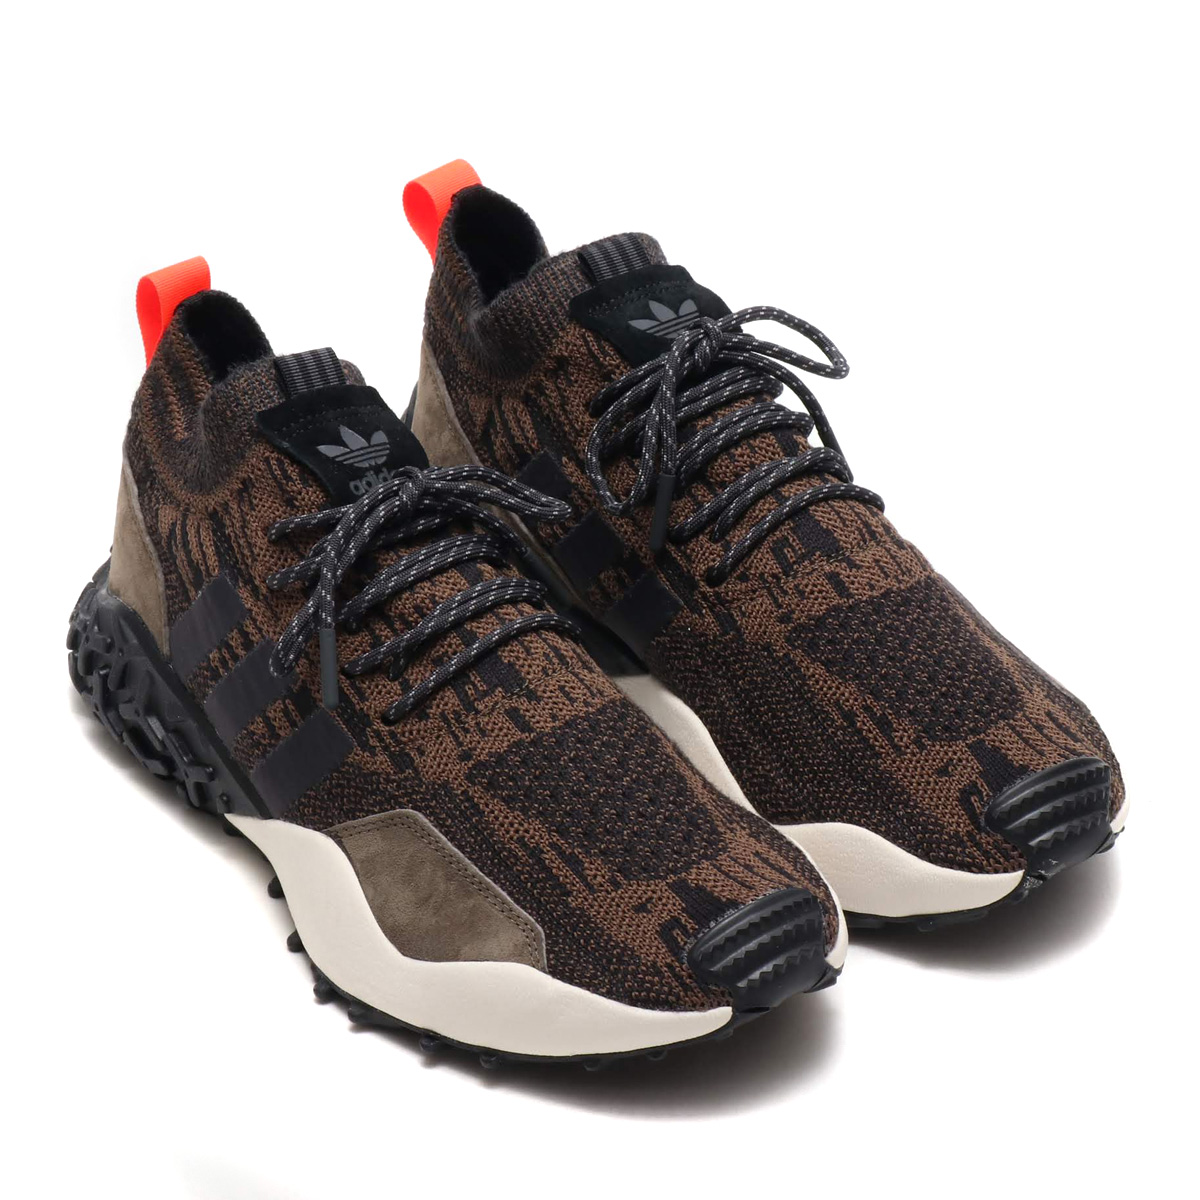 the best attitude 2adc3 dca30 The F   2 trail runner PK model who obtained an idea from a rich tradition  of Adidas by the trail running shows the response that is surprised at the  ...